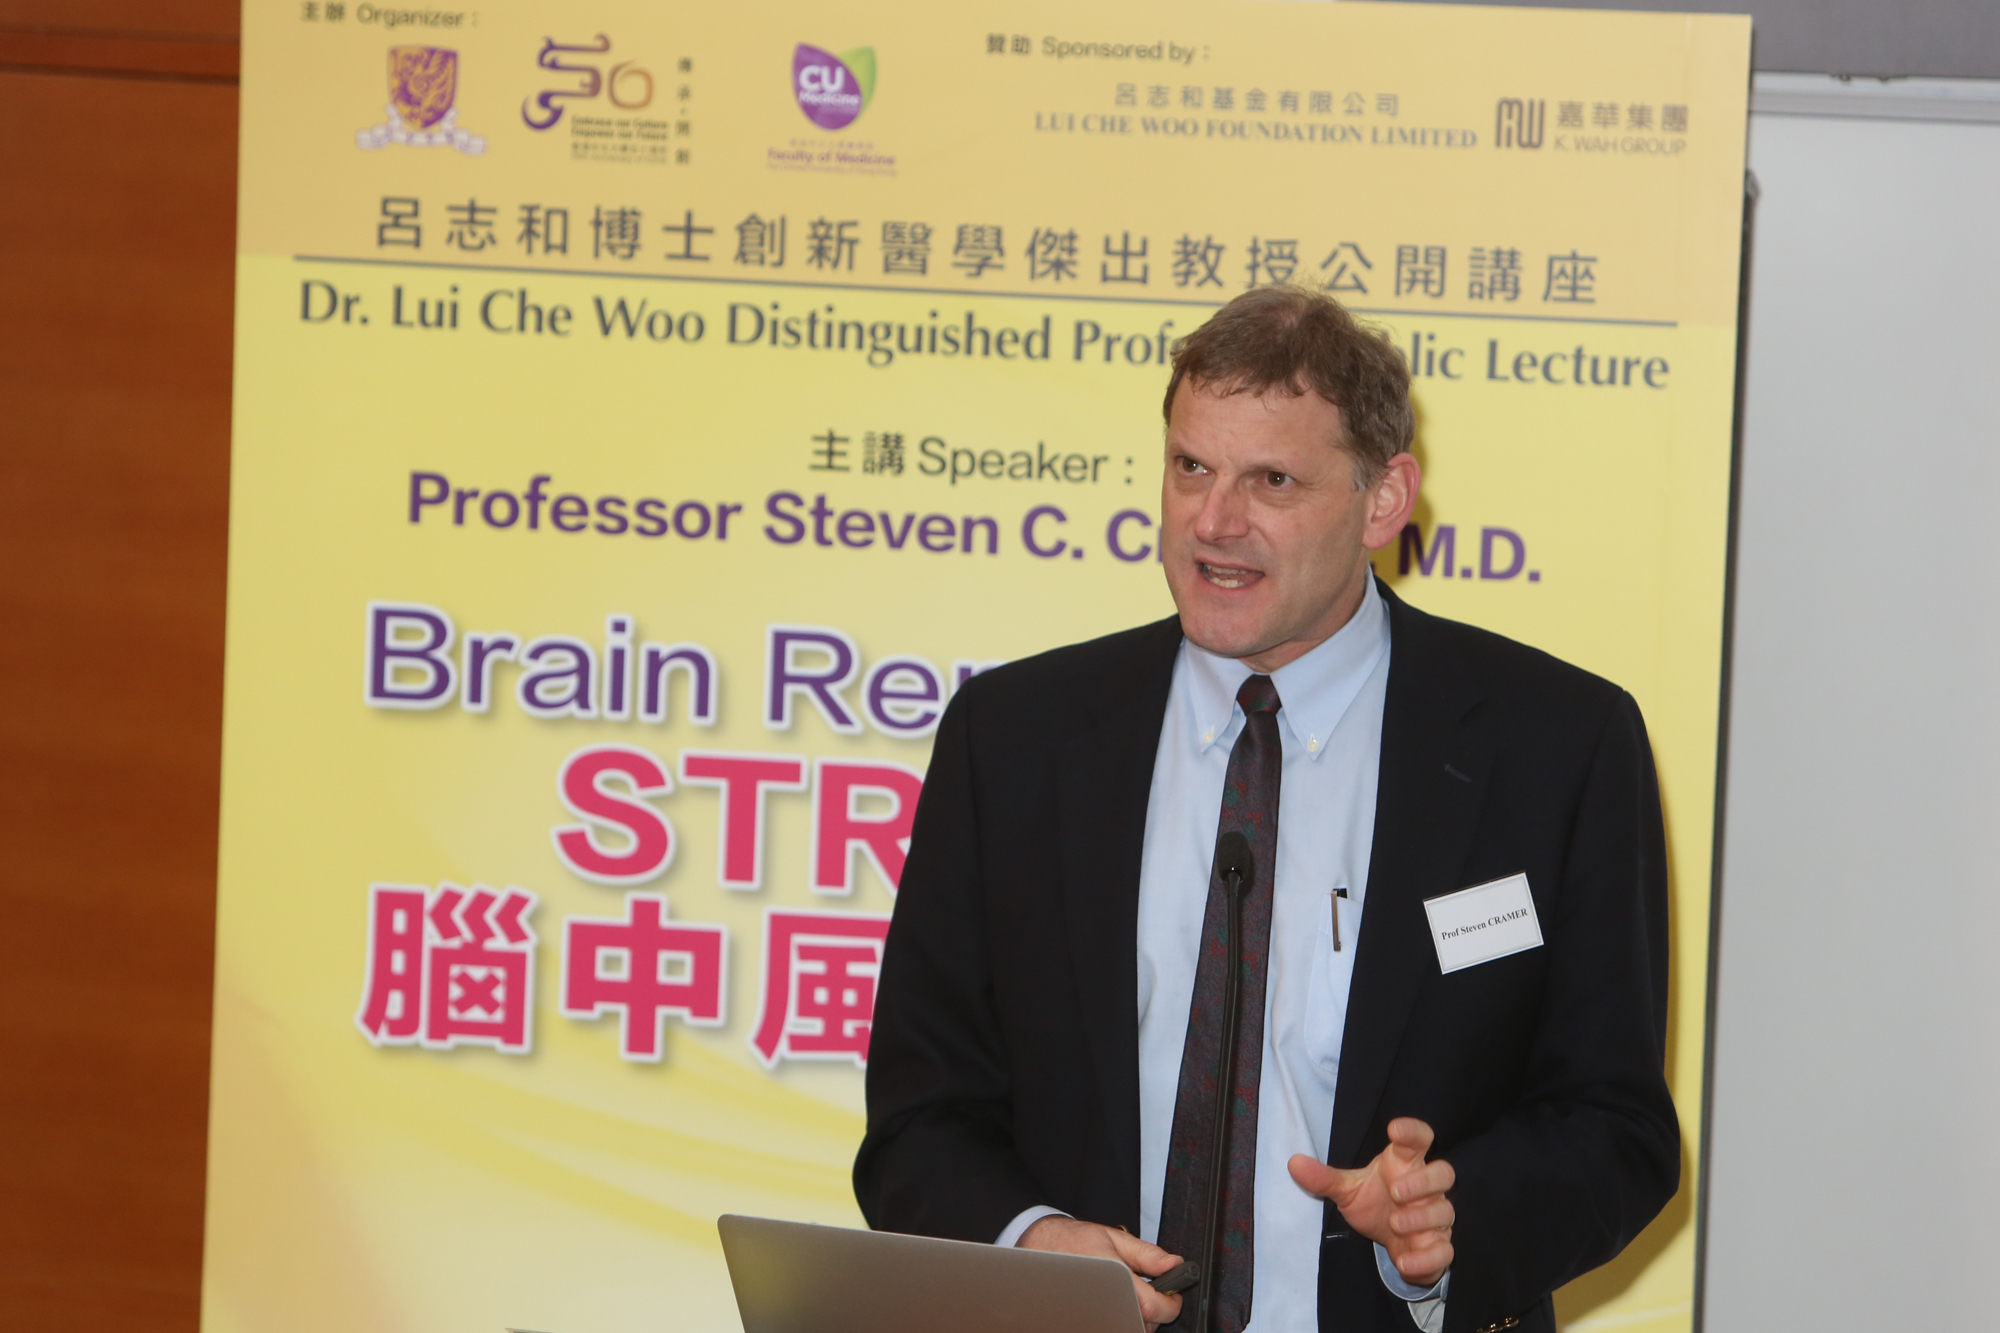 Prof. Steven Cramer, Vice-Chair of Research, Department of Neurology, School of Medicine, University of California